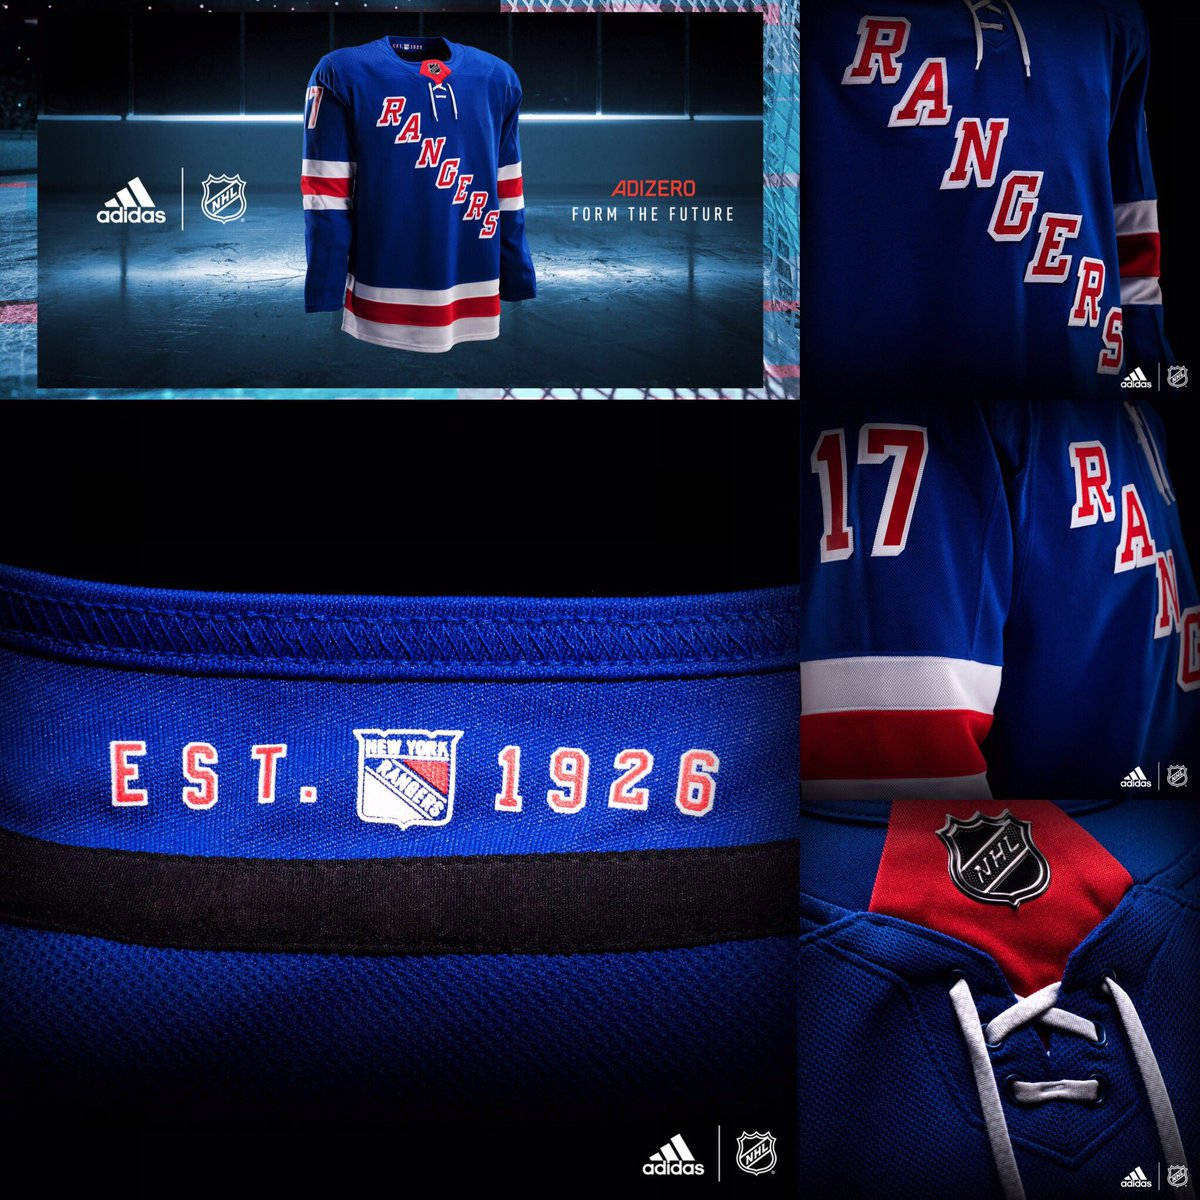 Uni Watch - Five takeaways about new Adidas-designed NHL uniforms a89fb443ca9